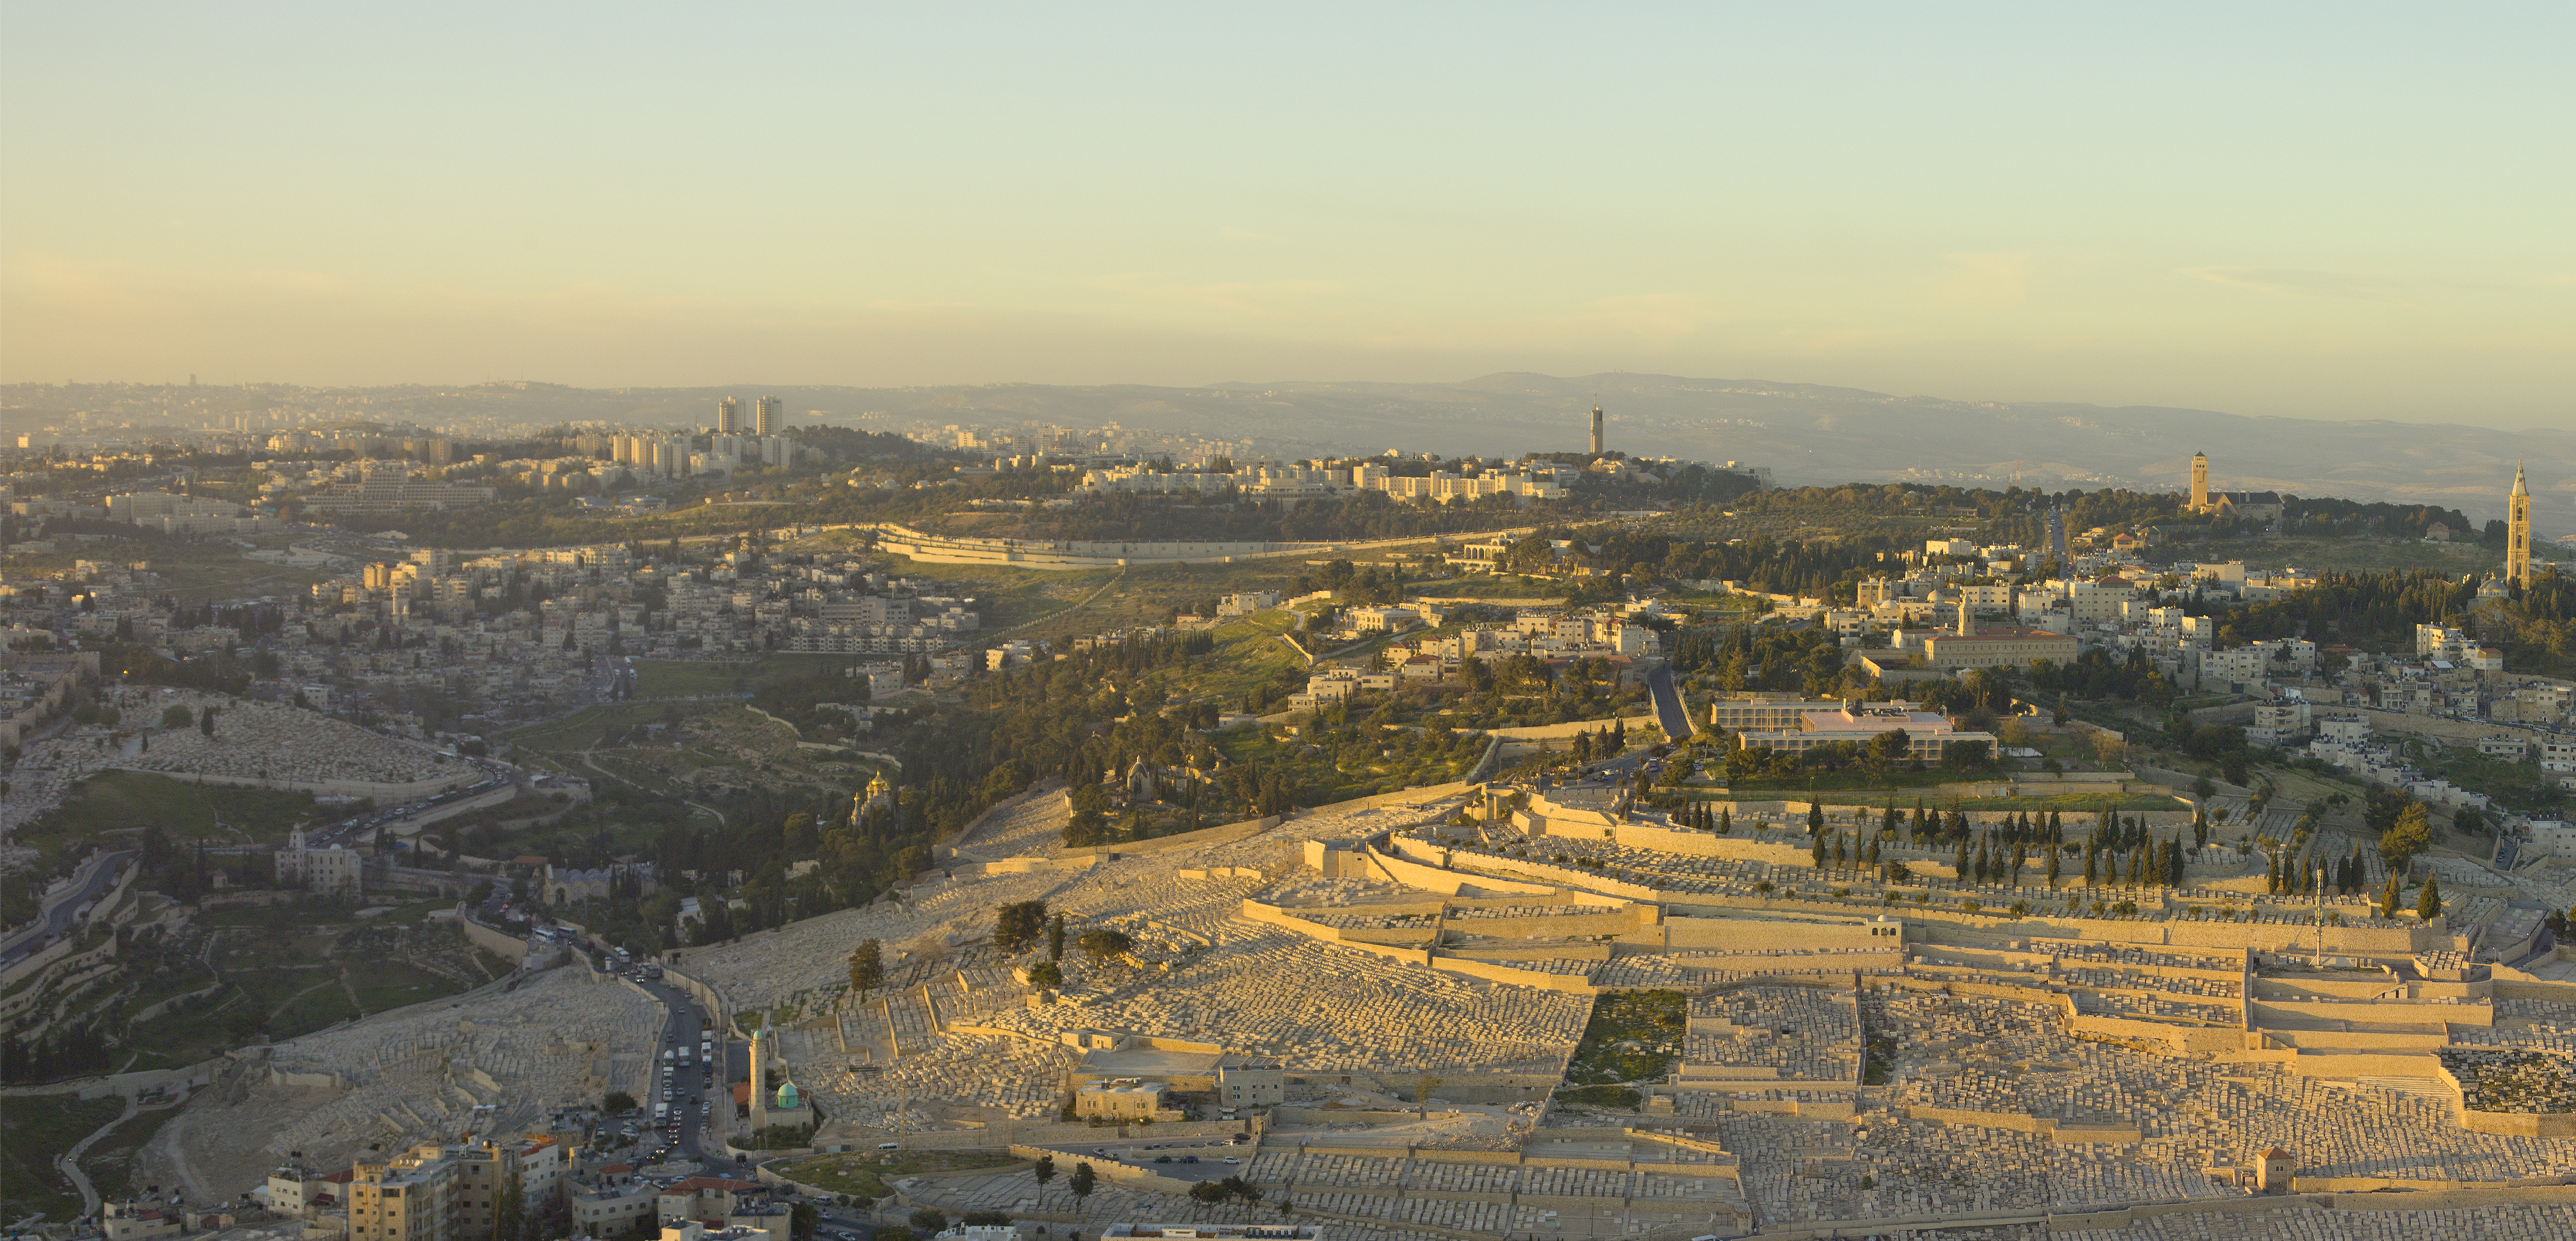 Israel-2013-Aerial-Mount_of_Olives.2